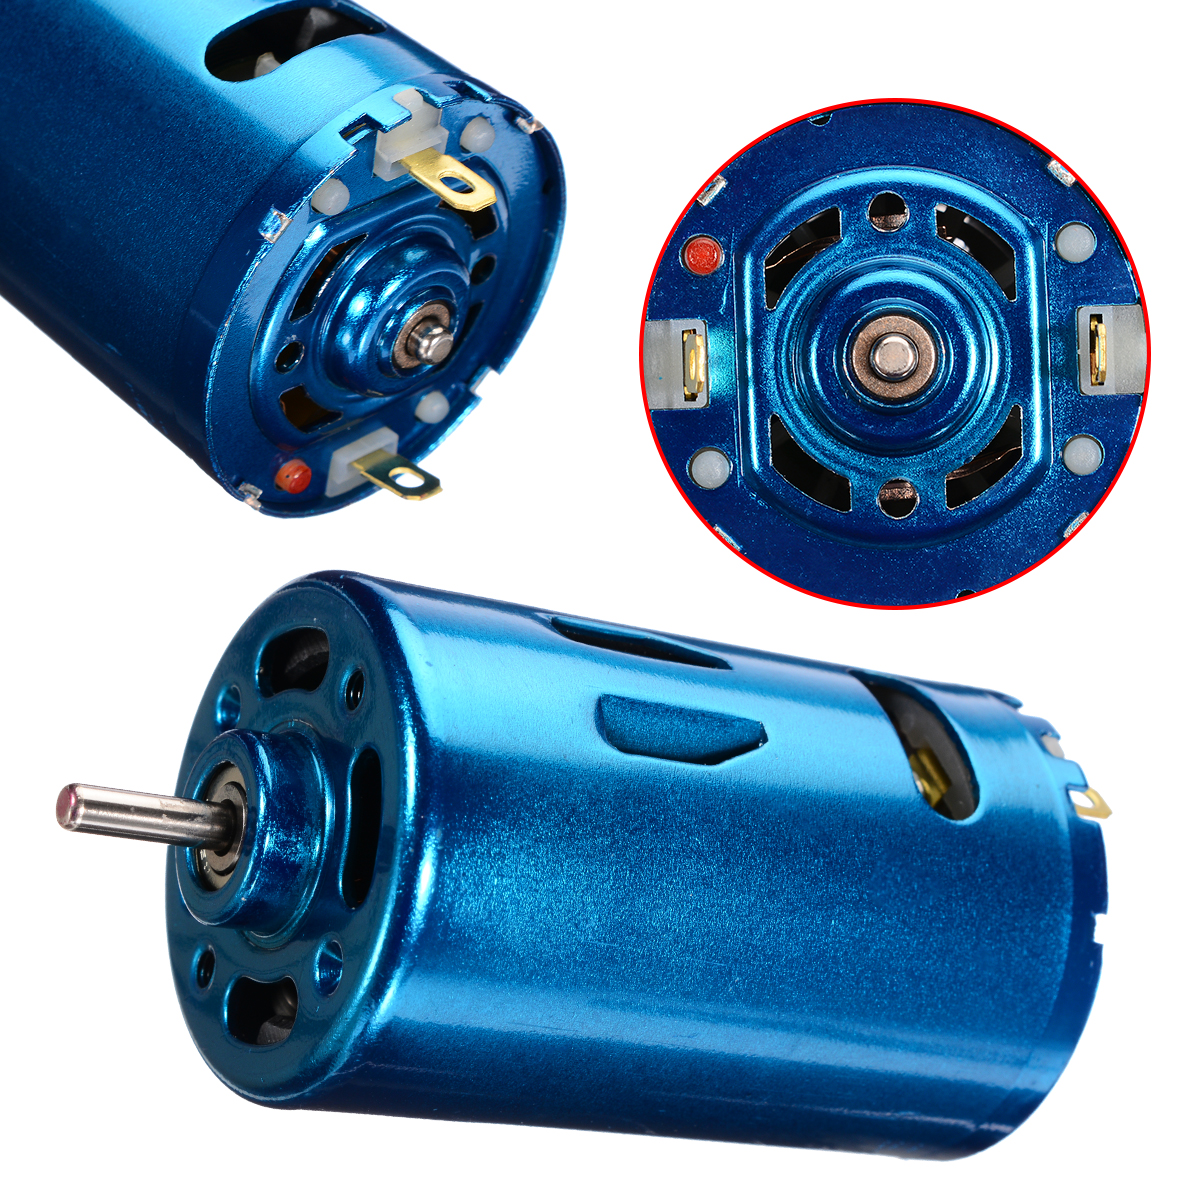 DC 12V 24V 30000RPM High Speed Large Torque DC motor For RC Car Boat Model Electric Tool DIY Motor Parts Durable